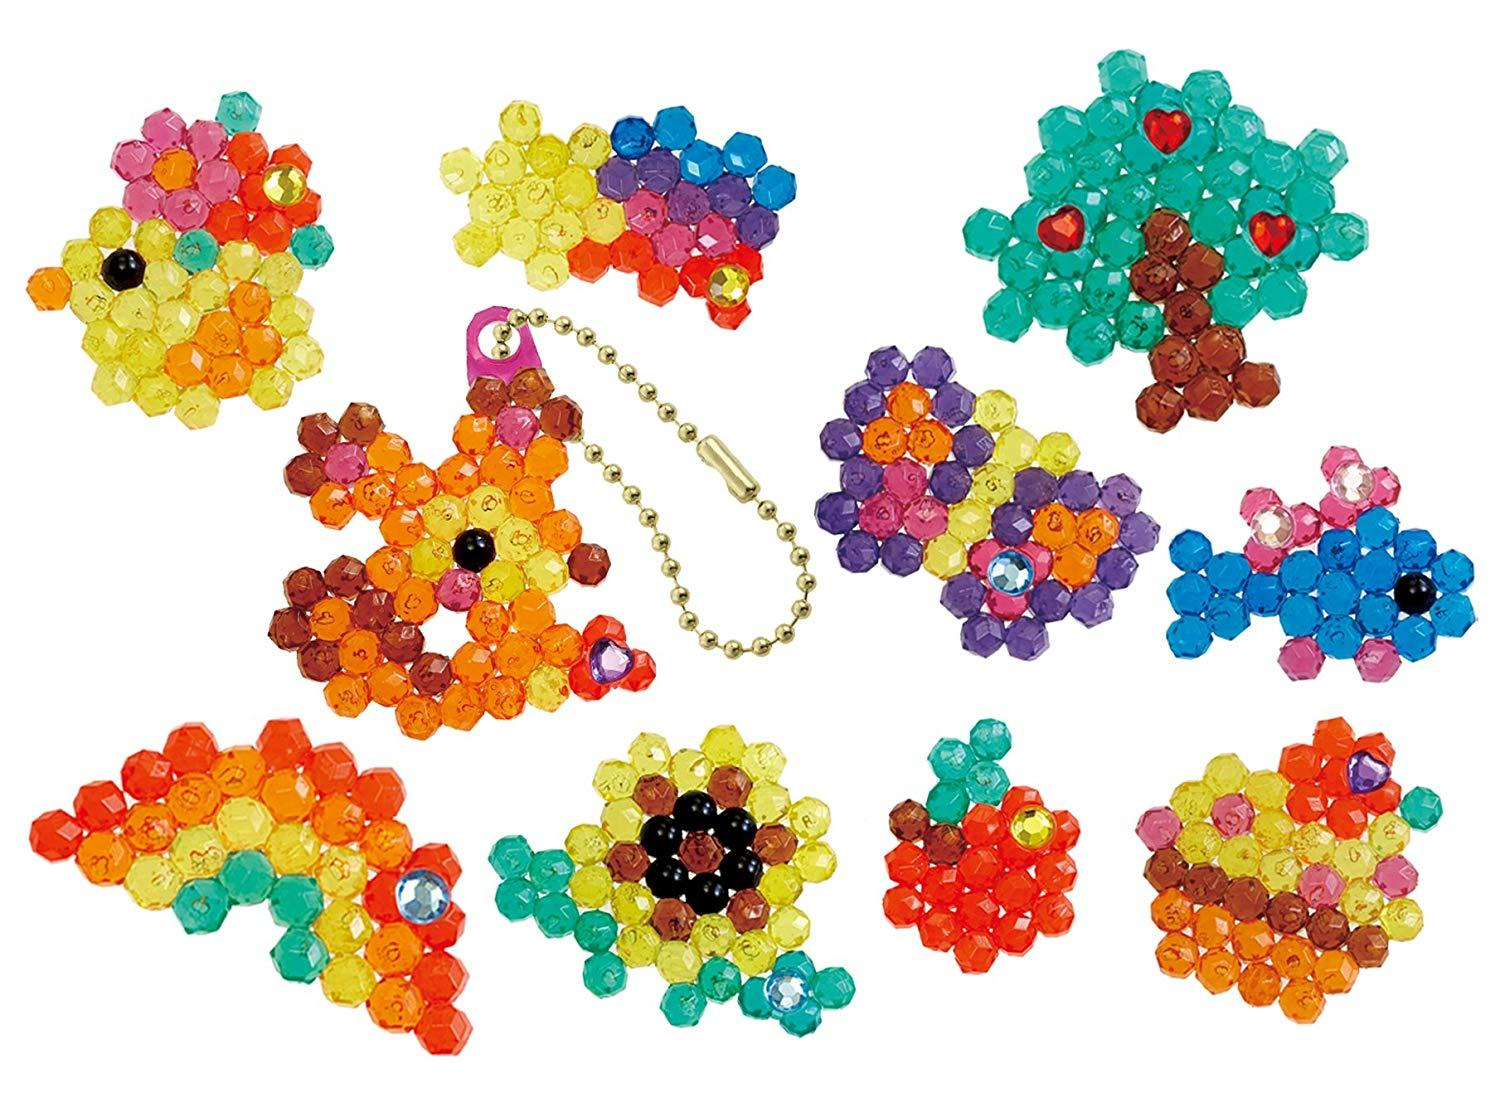 Aquabeads refill crystal charm set bead pack (79288)